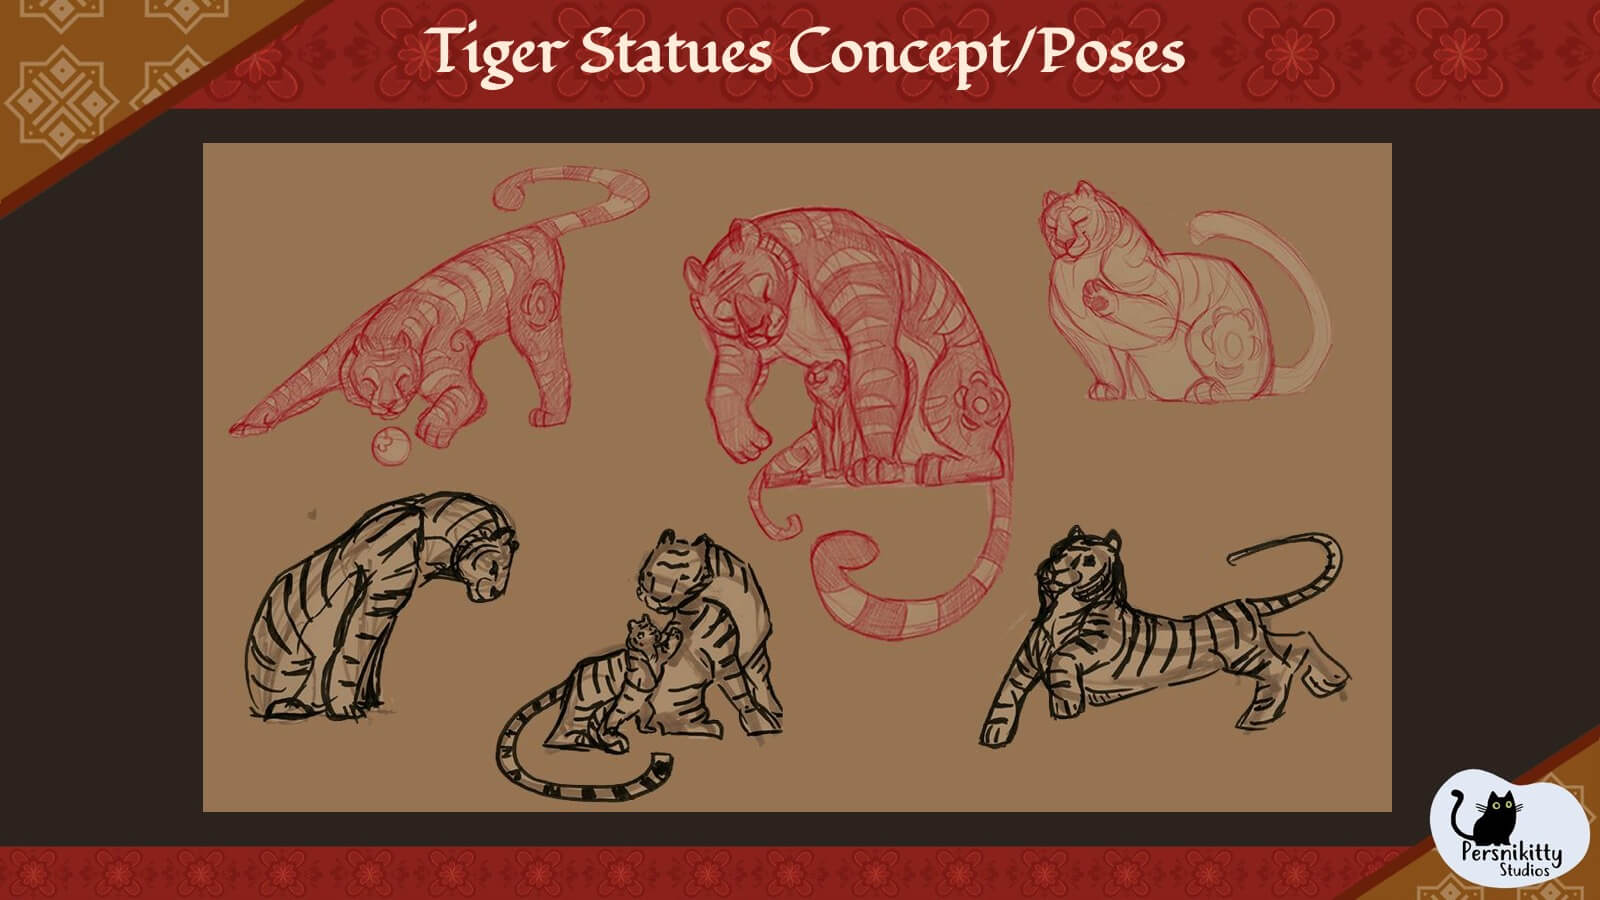 A slide displaying a variety of poses for the film's tiger statues.